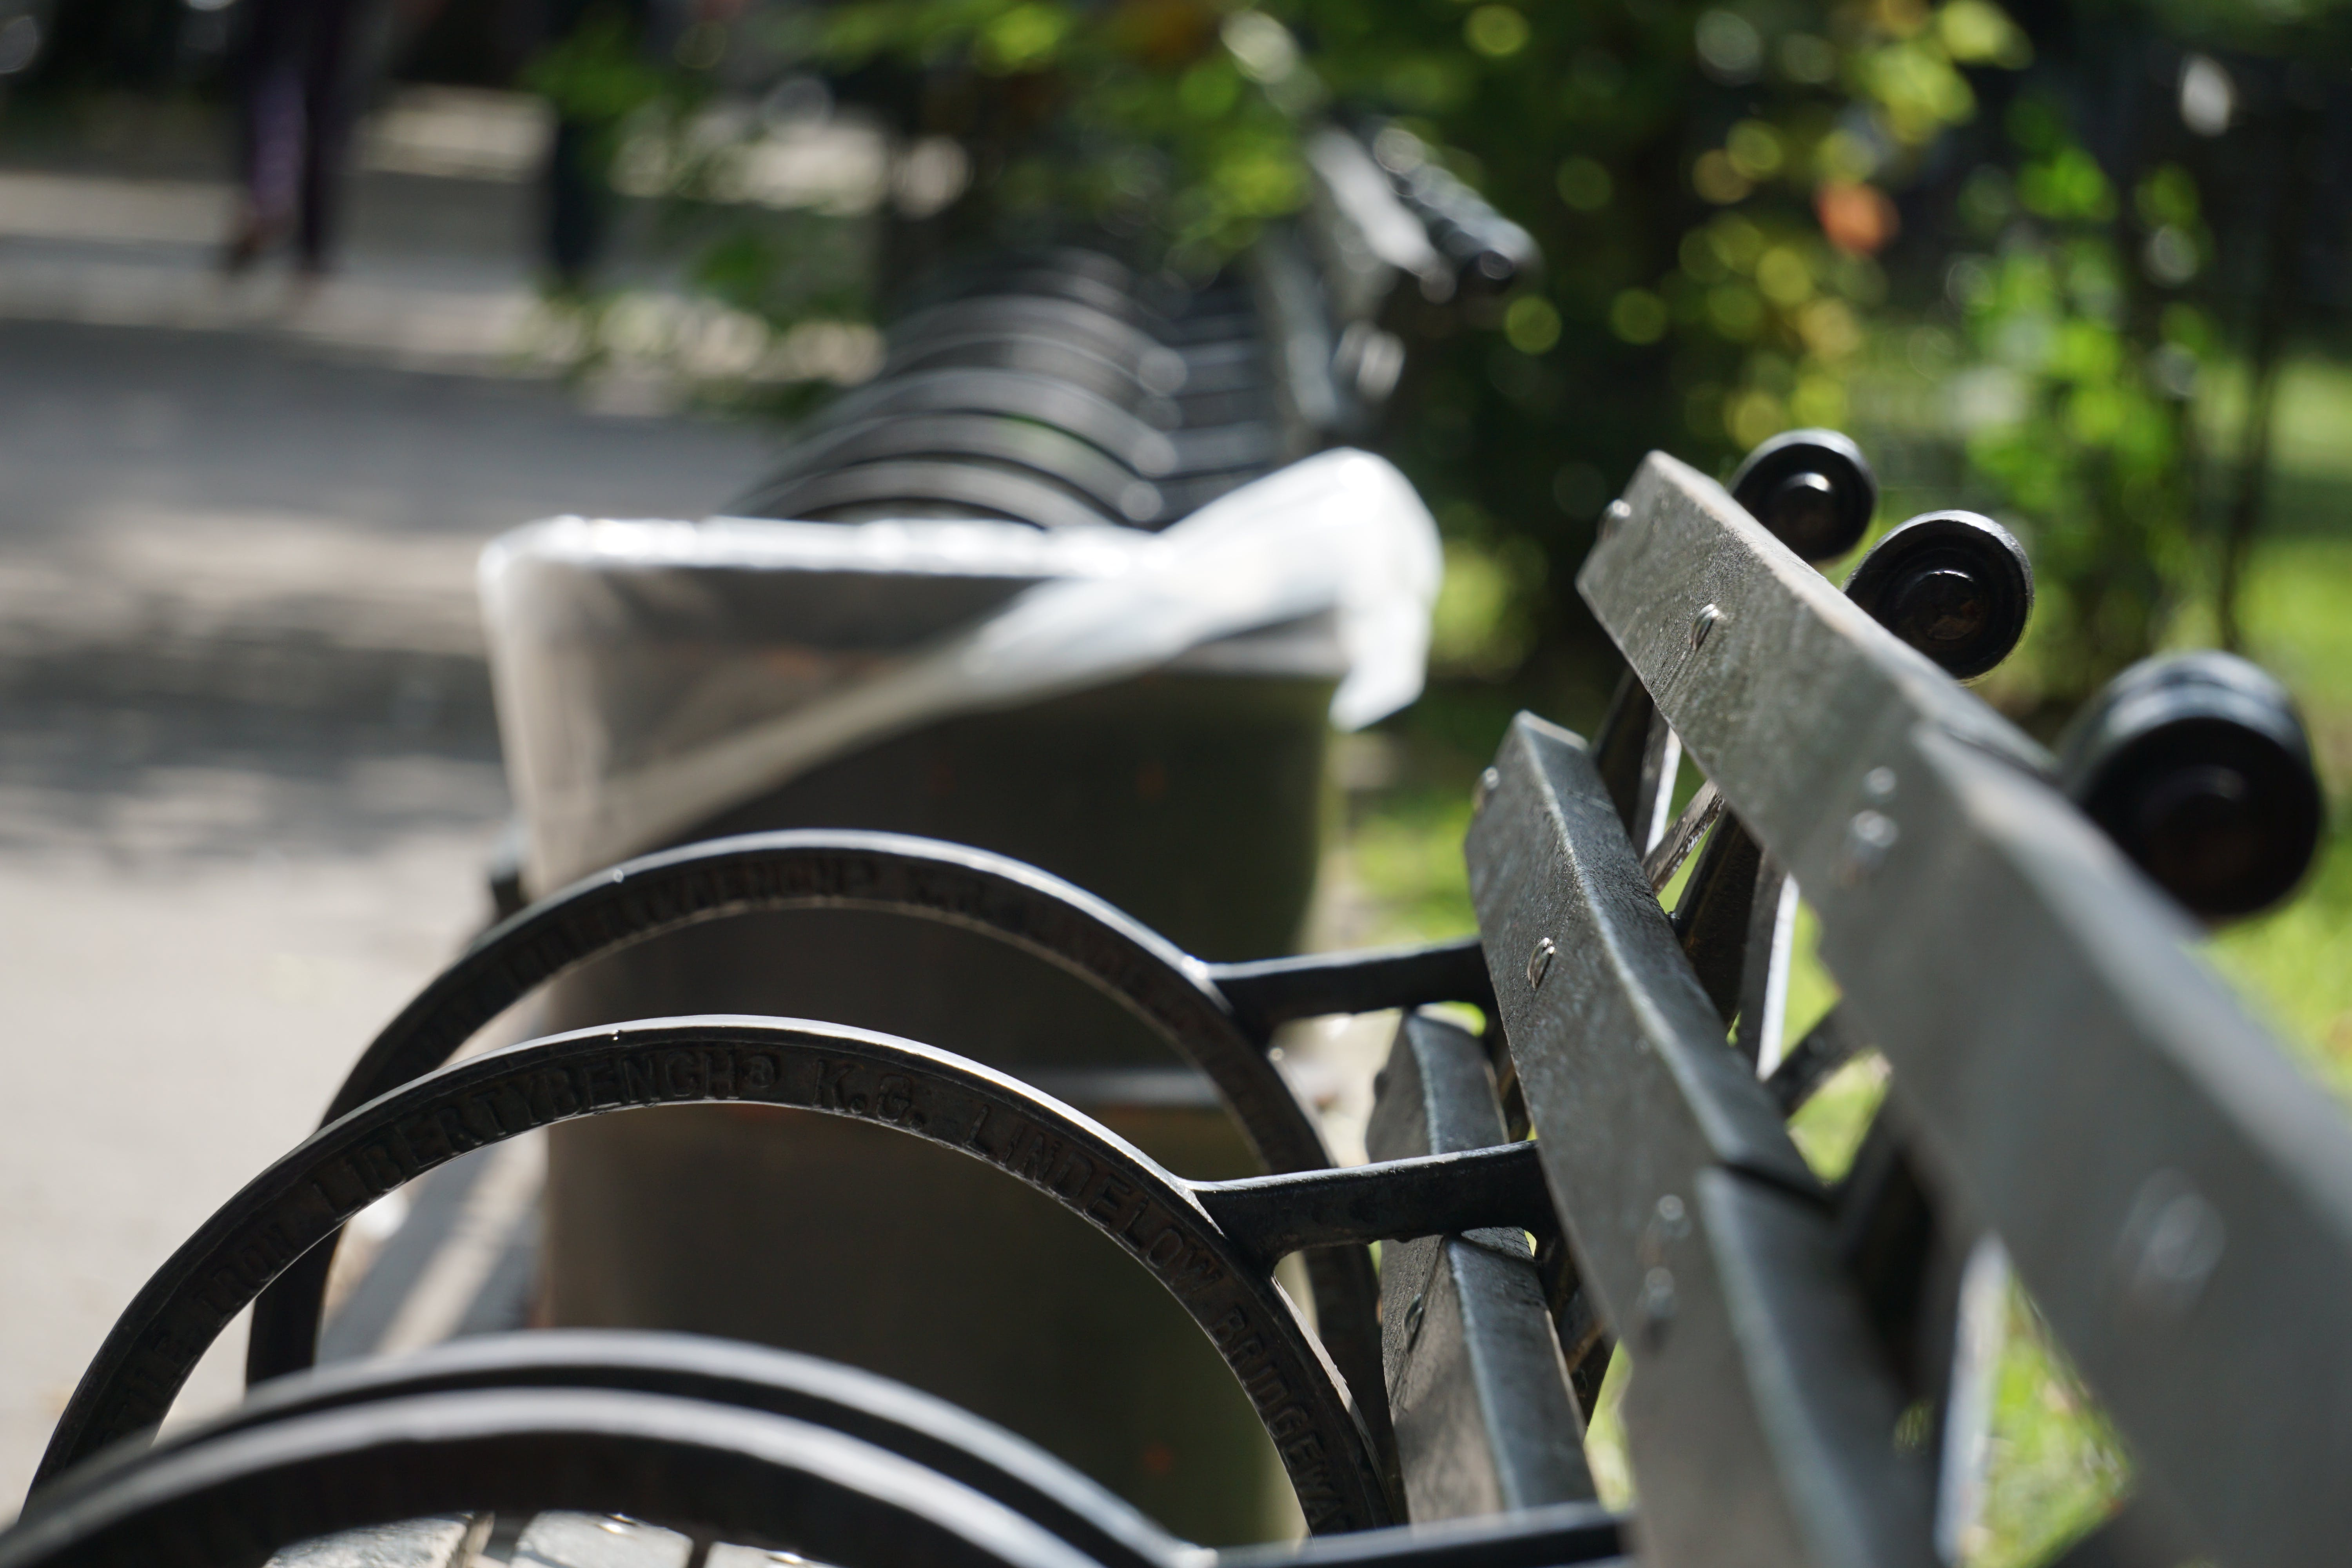 Free stock photo of bench, park, outdoor, new york city wallpaper